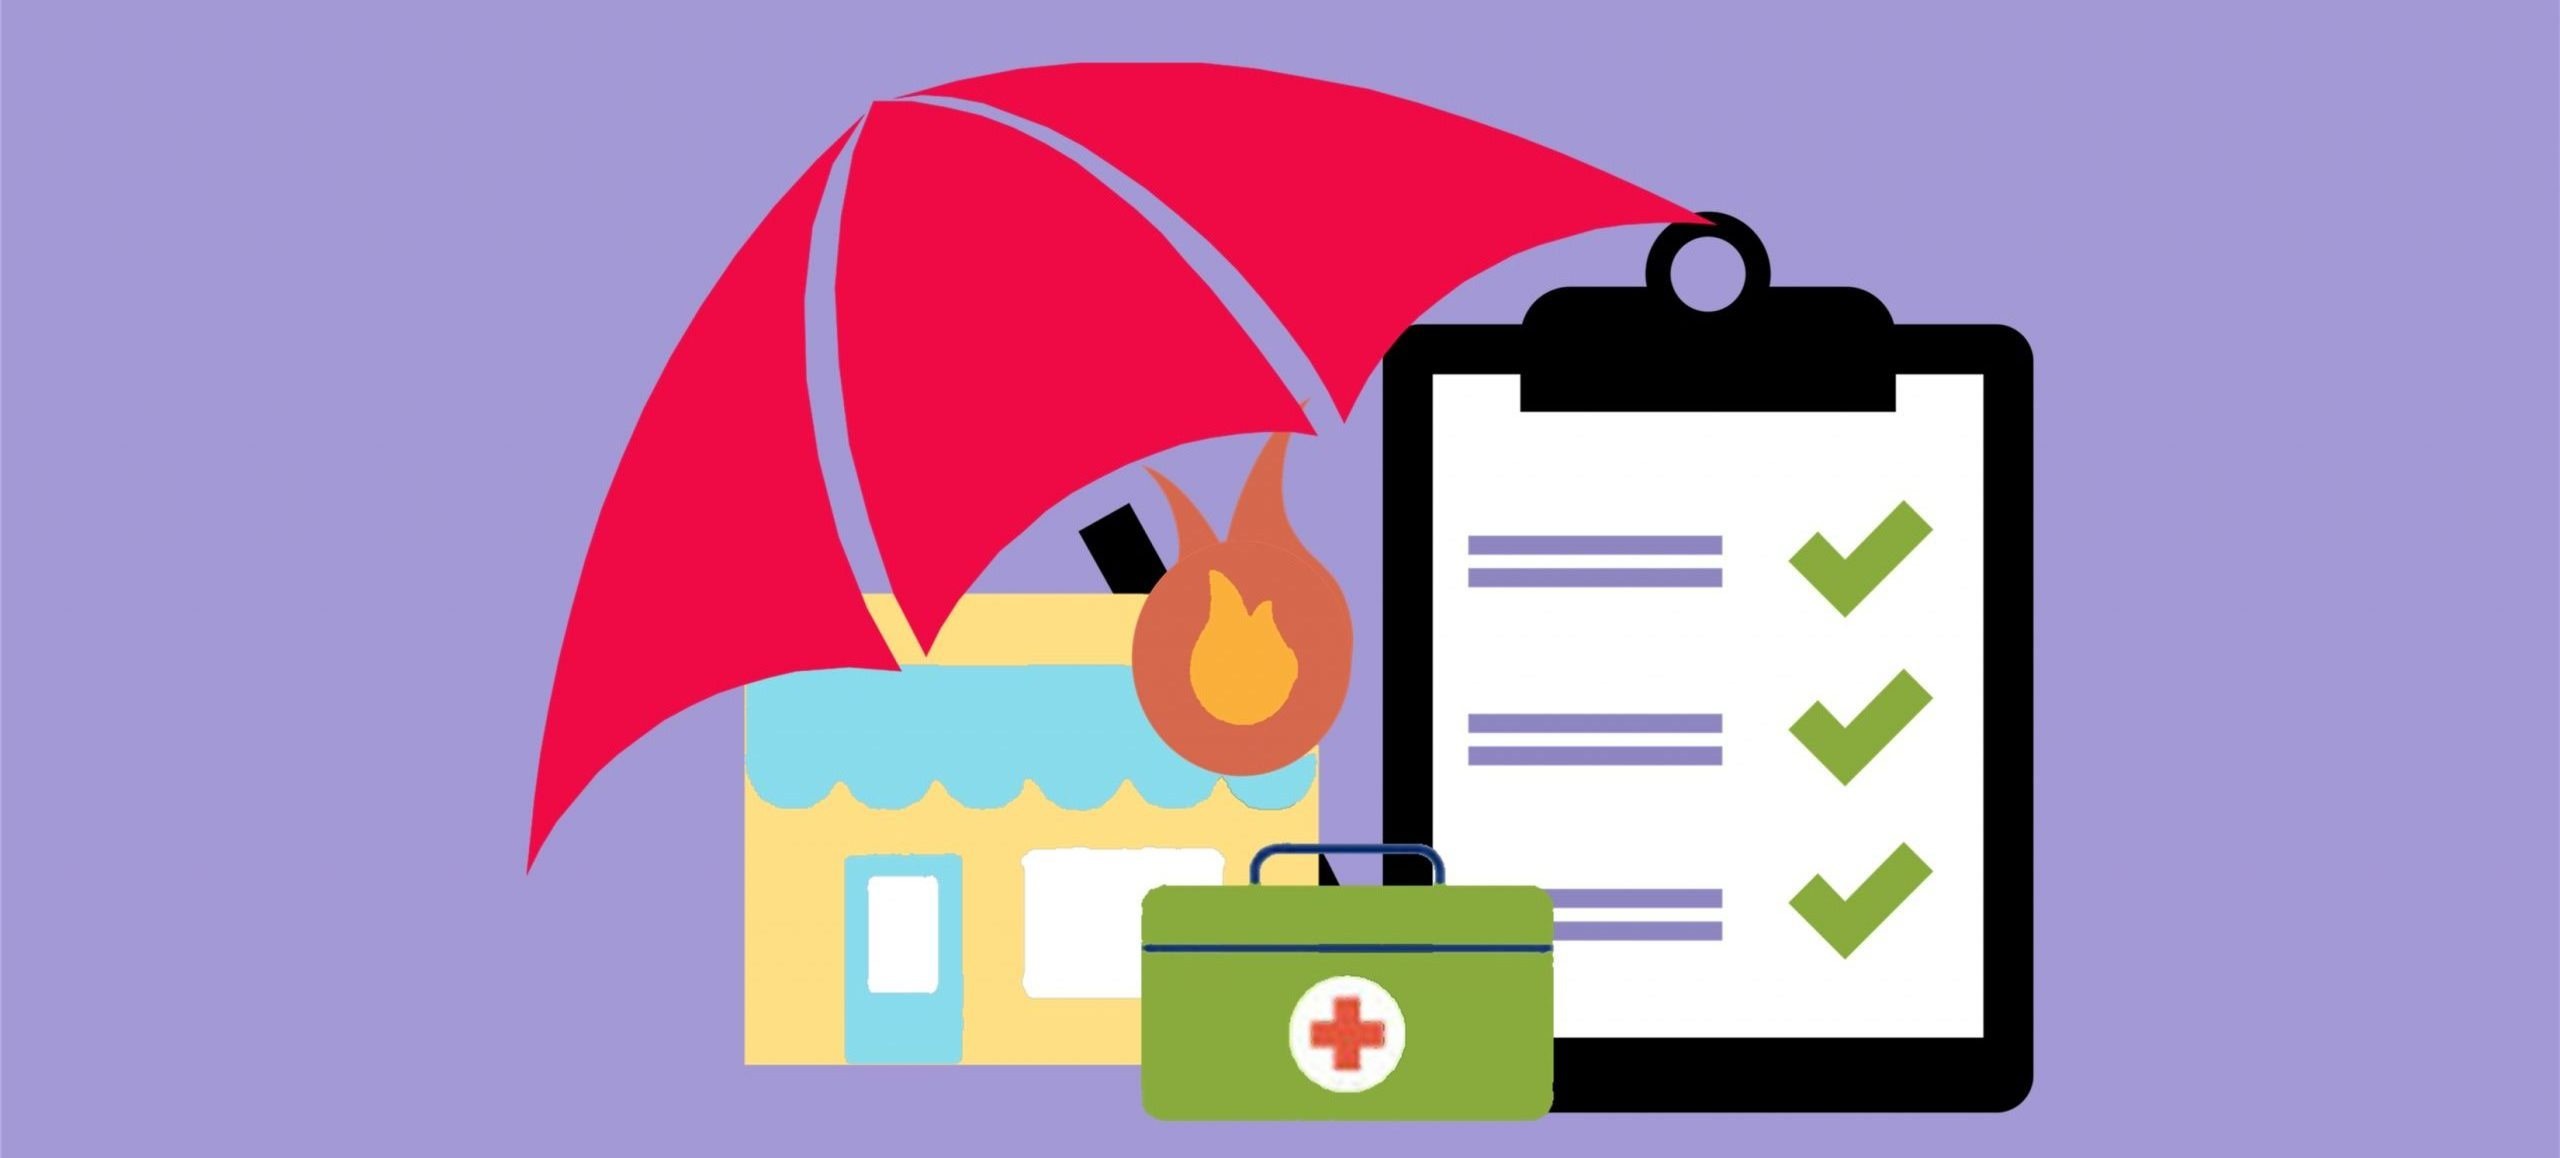 Illustration of umbrella over top of a building with a flame and a first aid kit beside a clipboard to indicate liability and workers' insurance